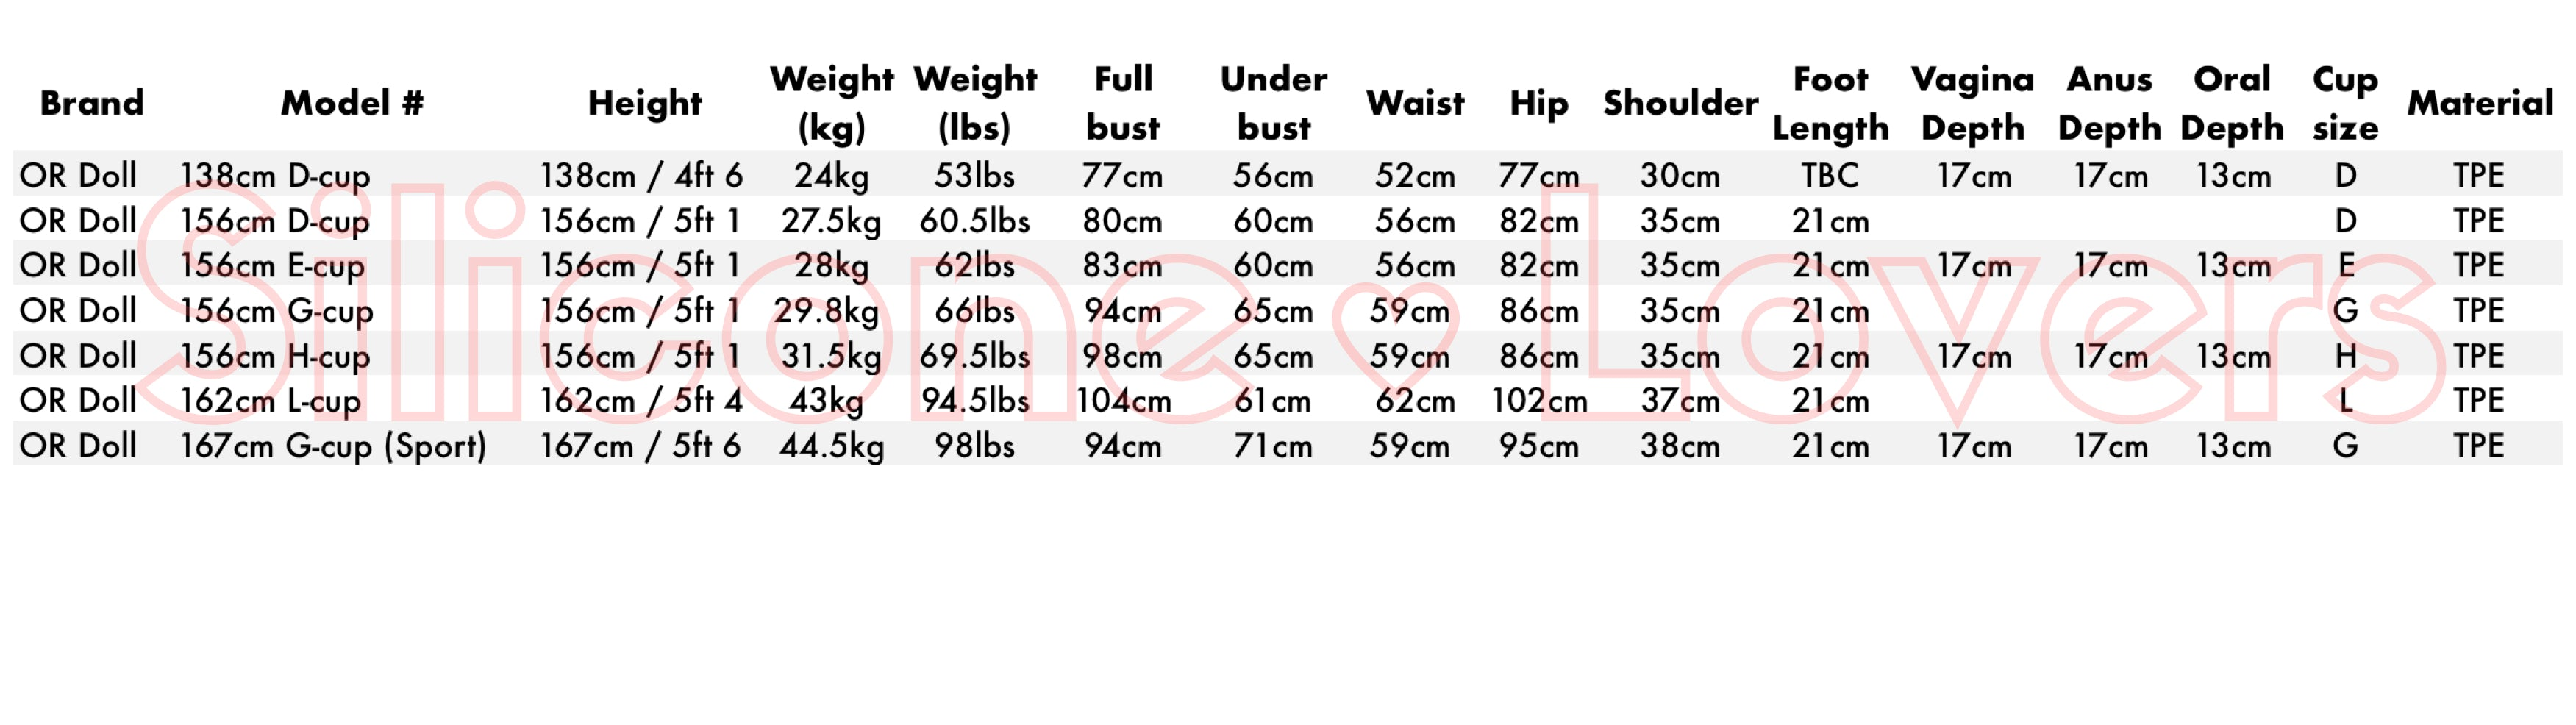 OR Dolls size chart and measurements for love dolls and sex dolls